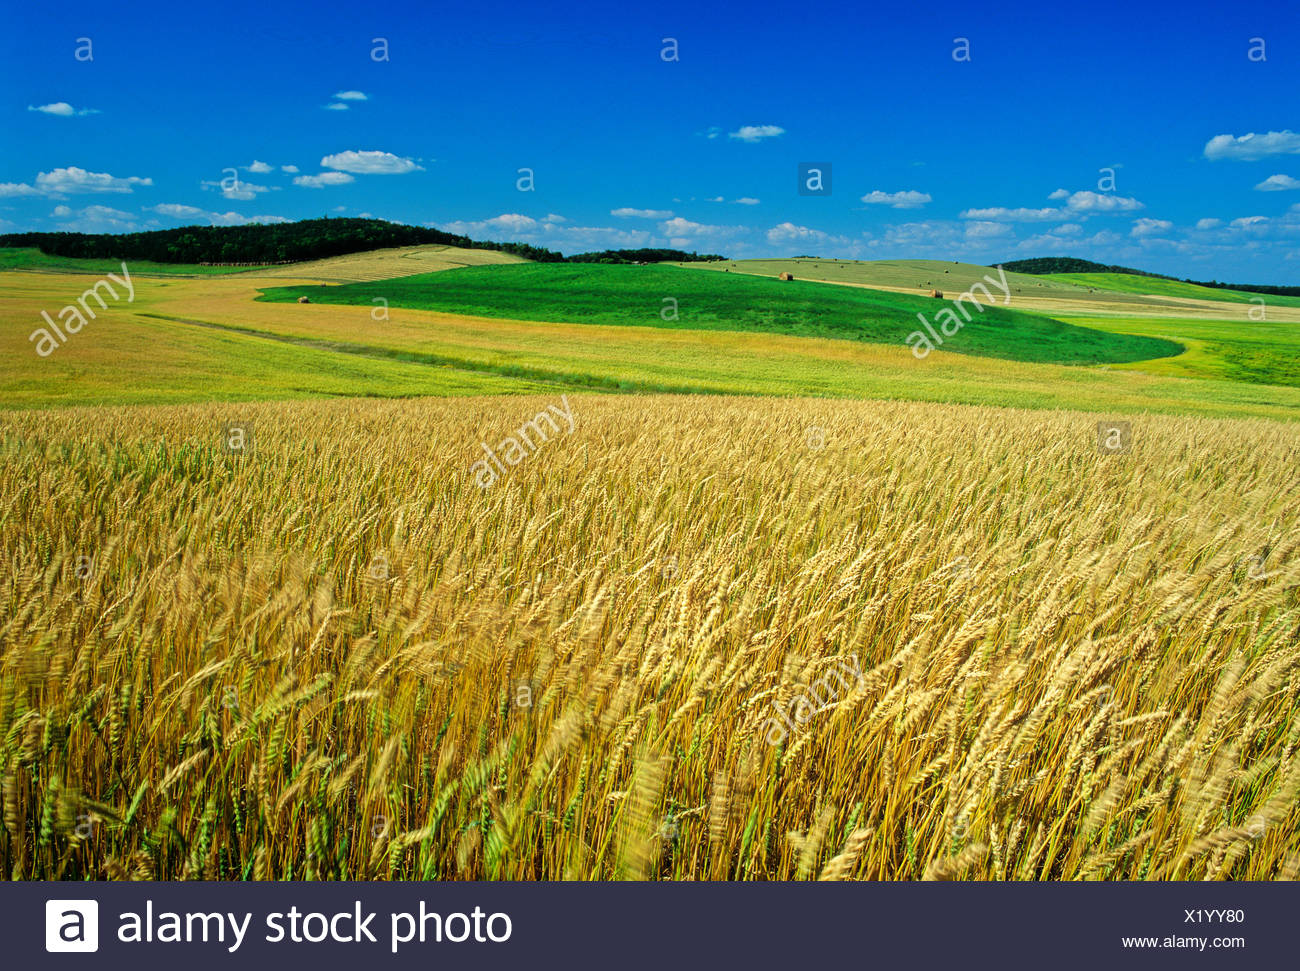 maturing spring wheat field with alfalfa fields in the distance, Tiger Hills, Manitoba, Canada - Stock Image